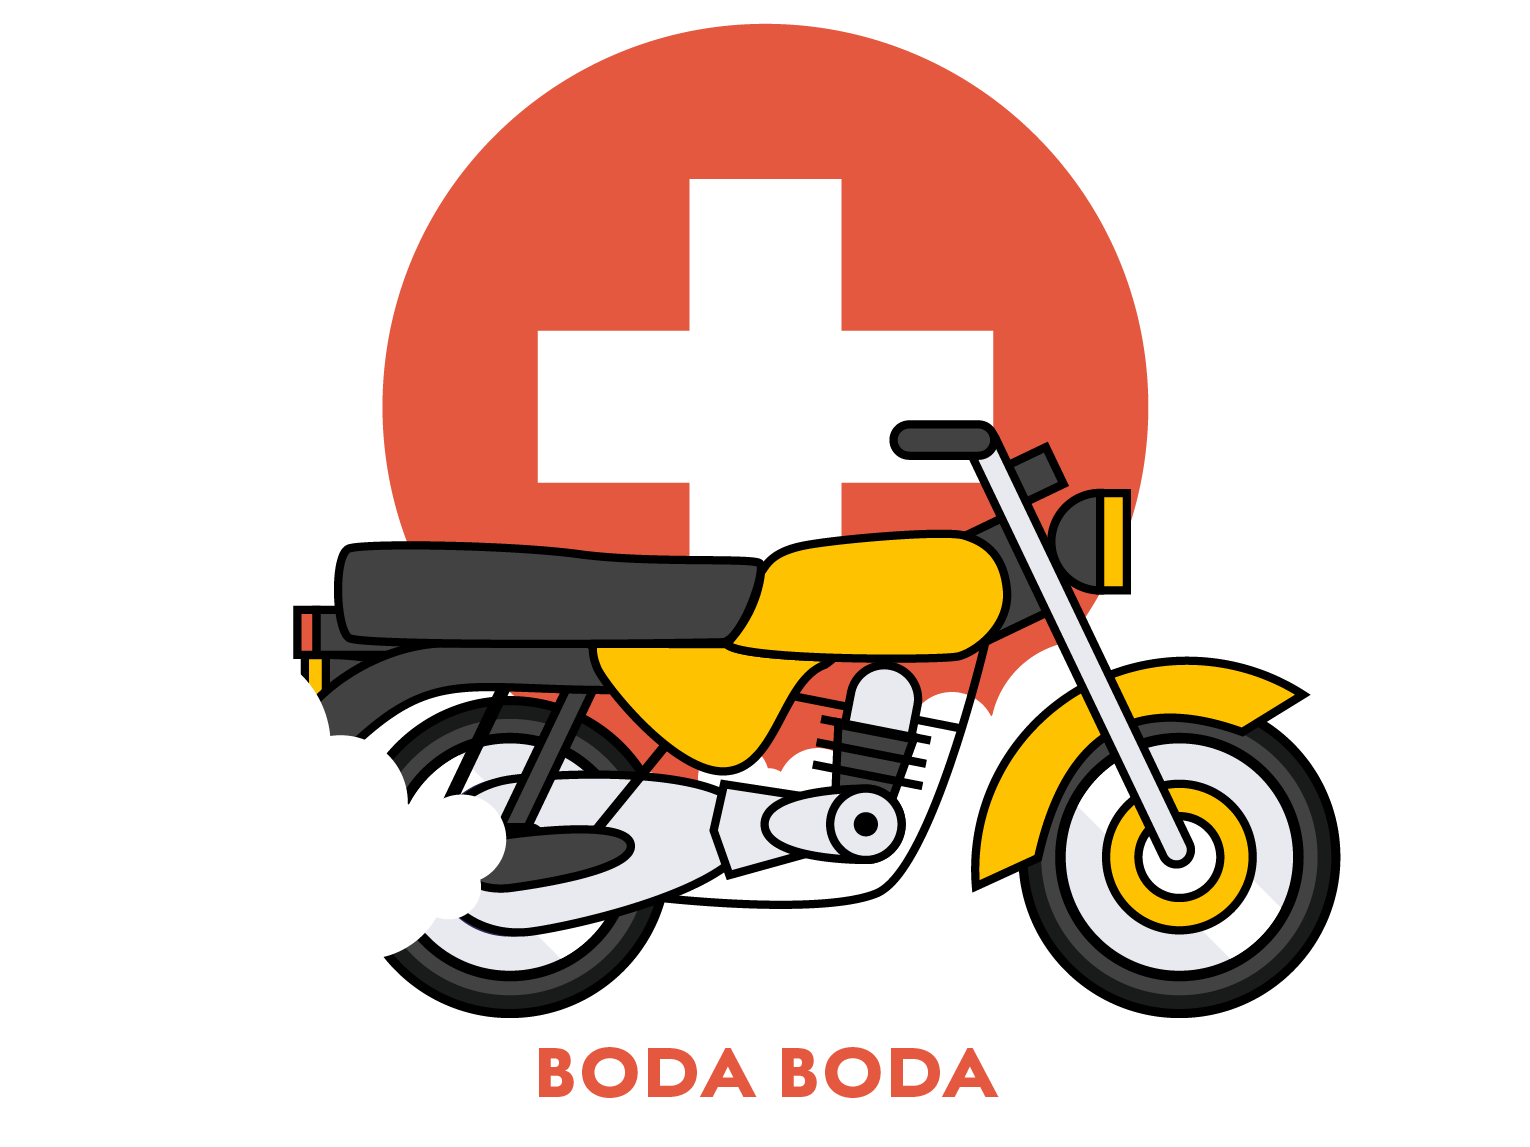 Thumbnail image for 'Boda Boda' project